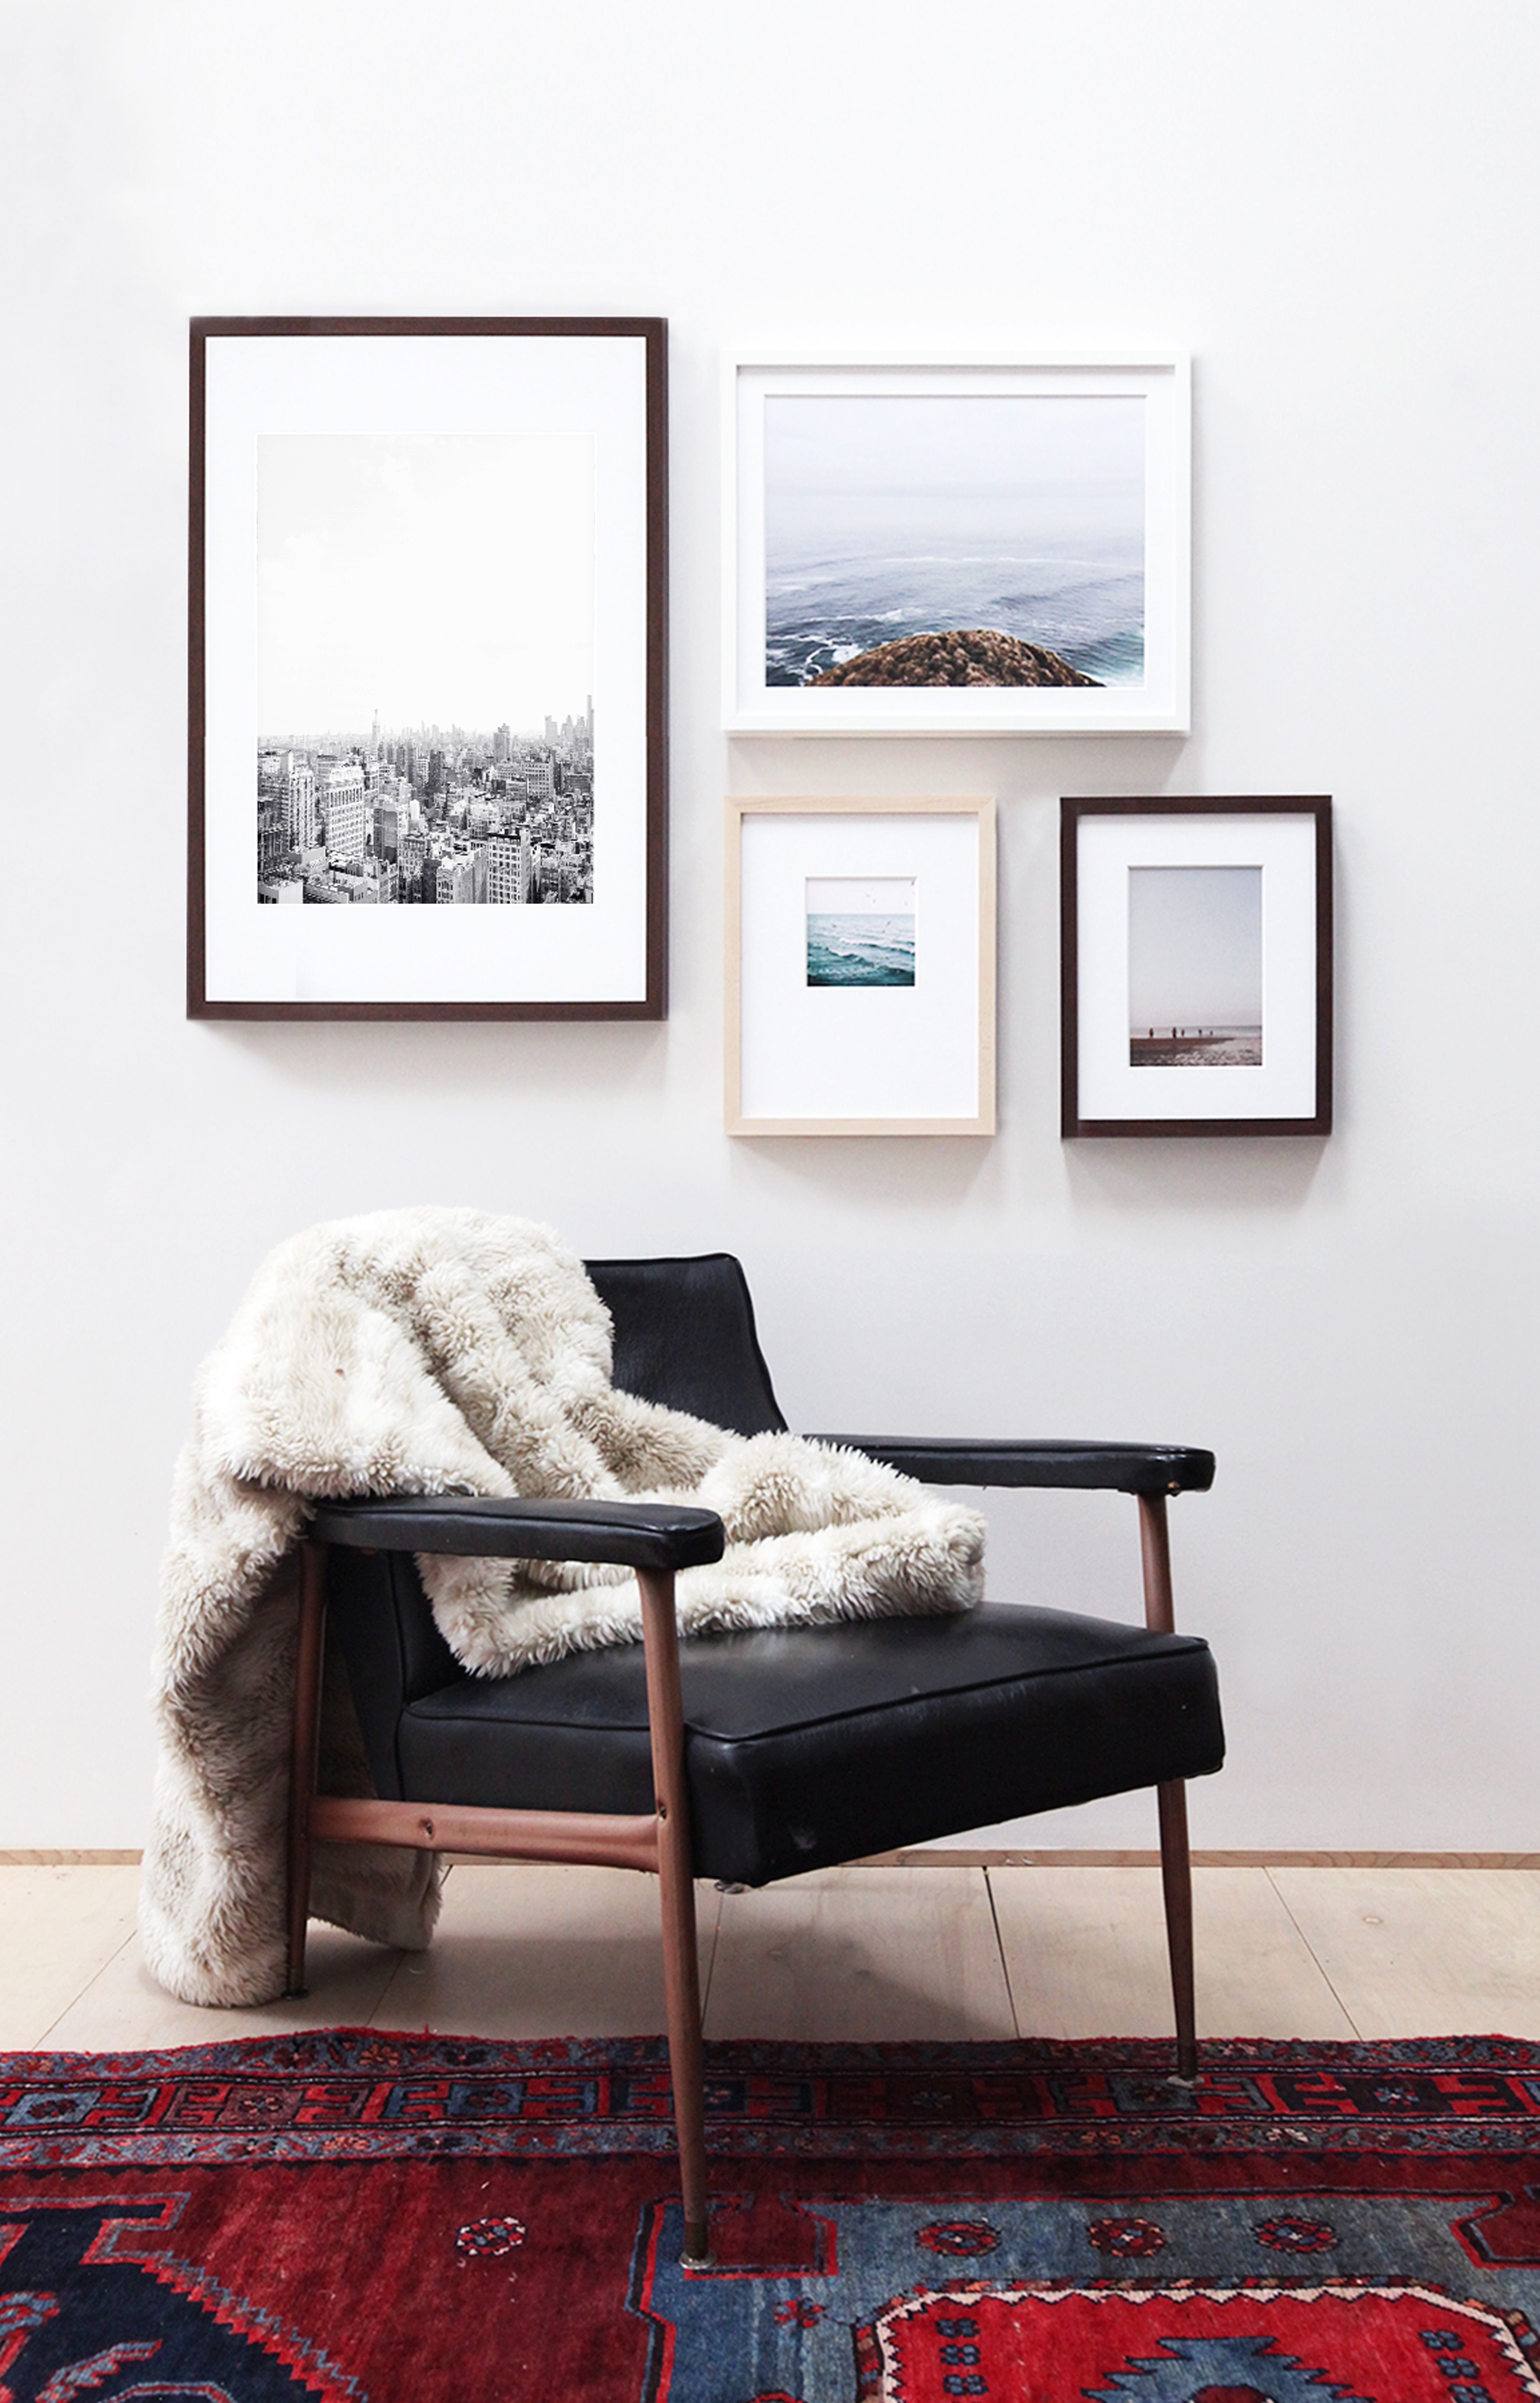 framed artwork for living room american made furniture prints home design wall gallery if these walls could talk complete your corner with artifactuprsng custom framing archival finished real hardwoods